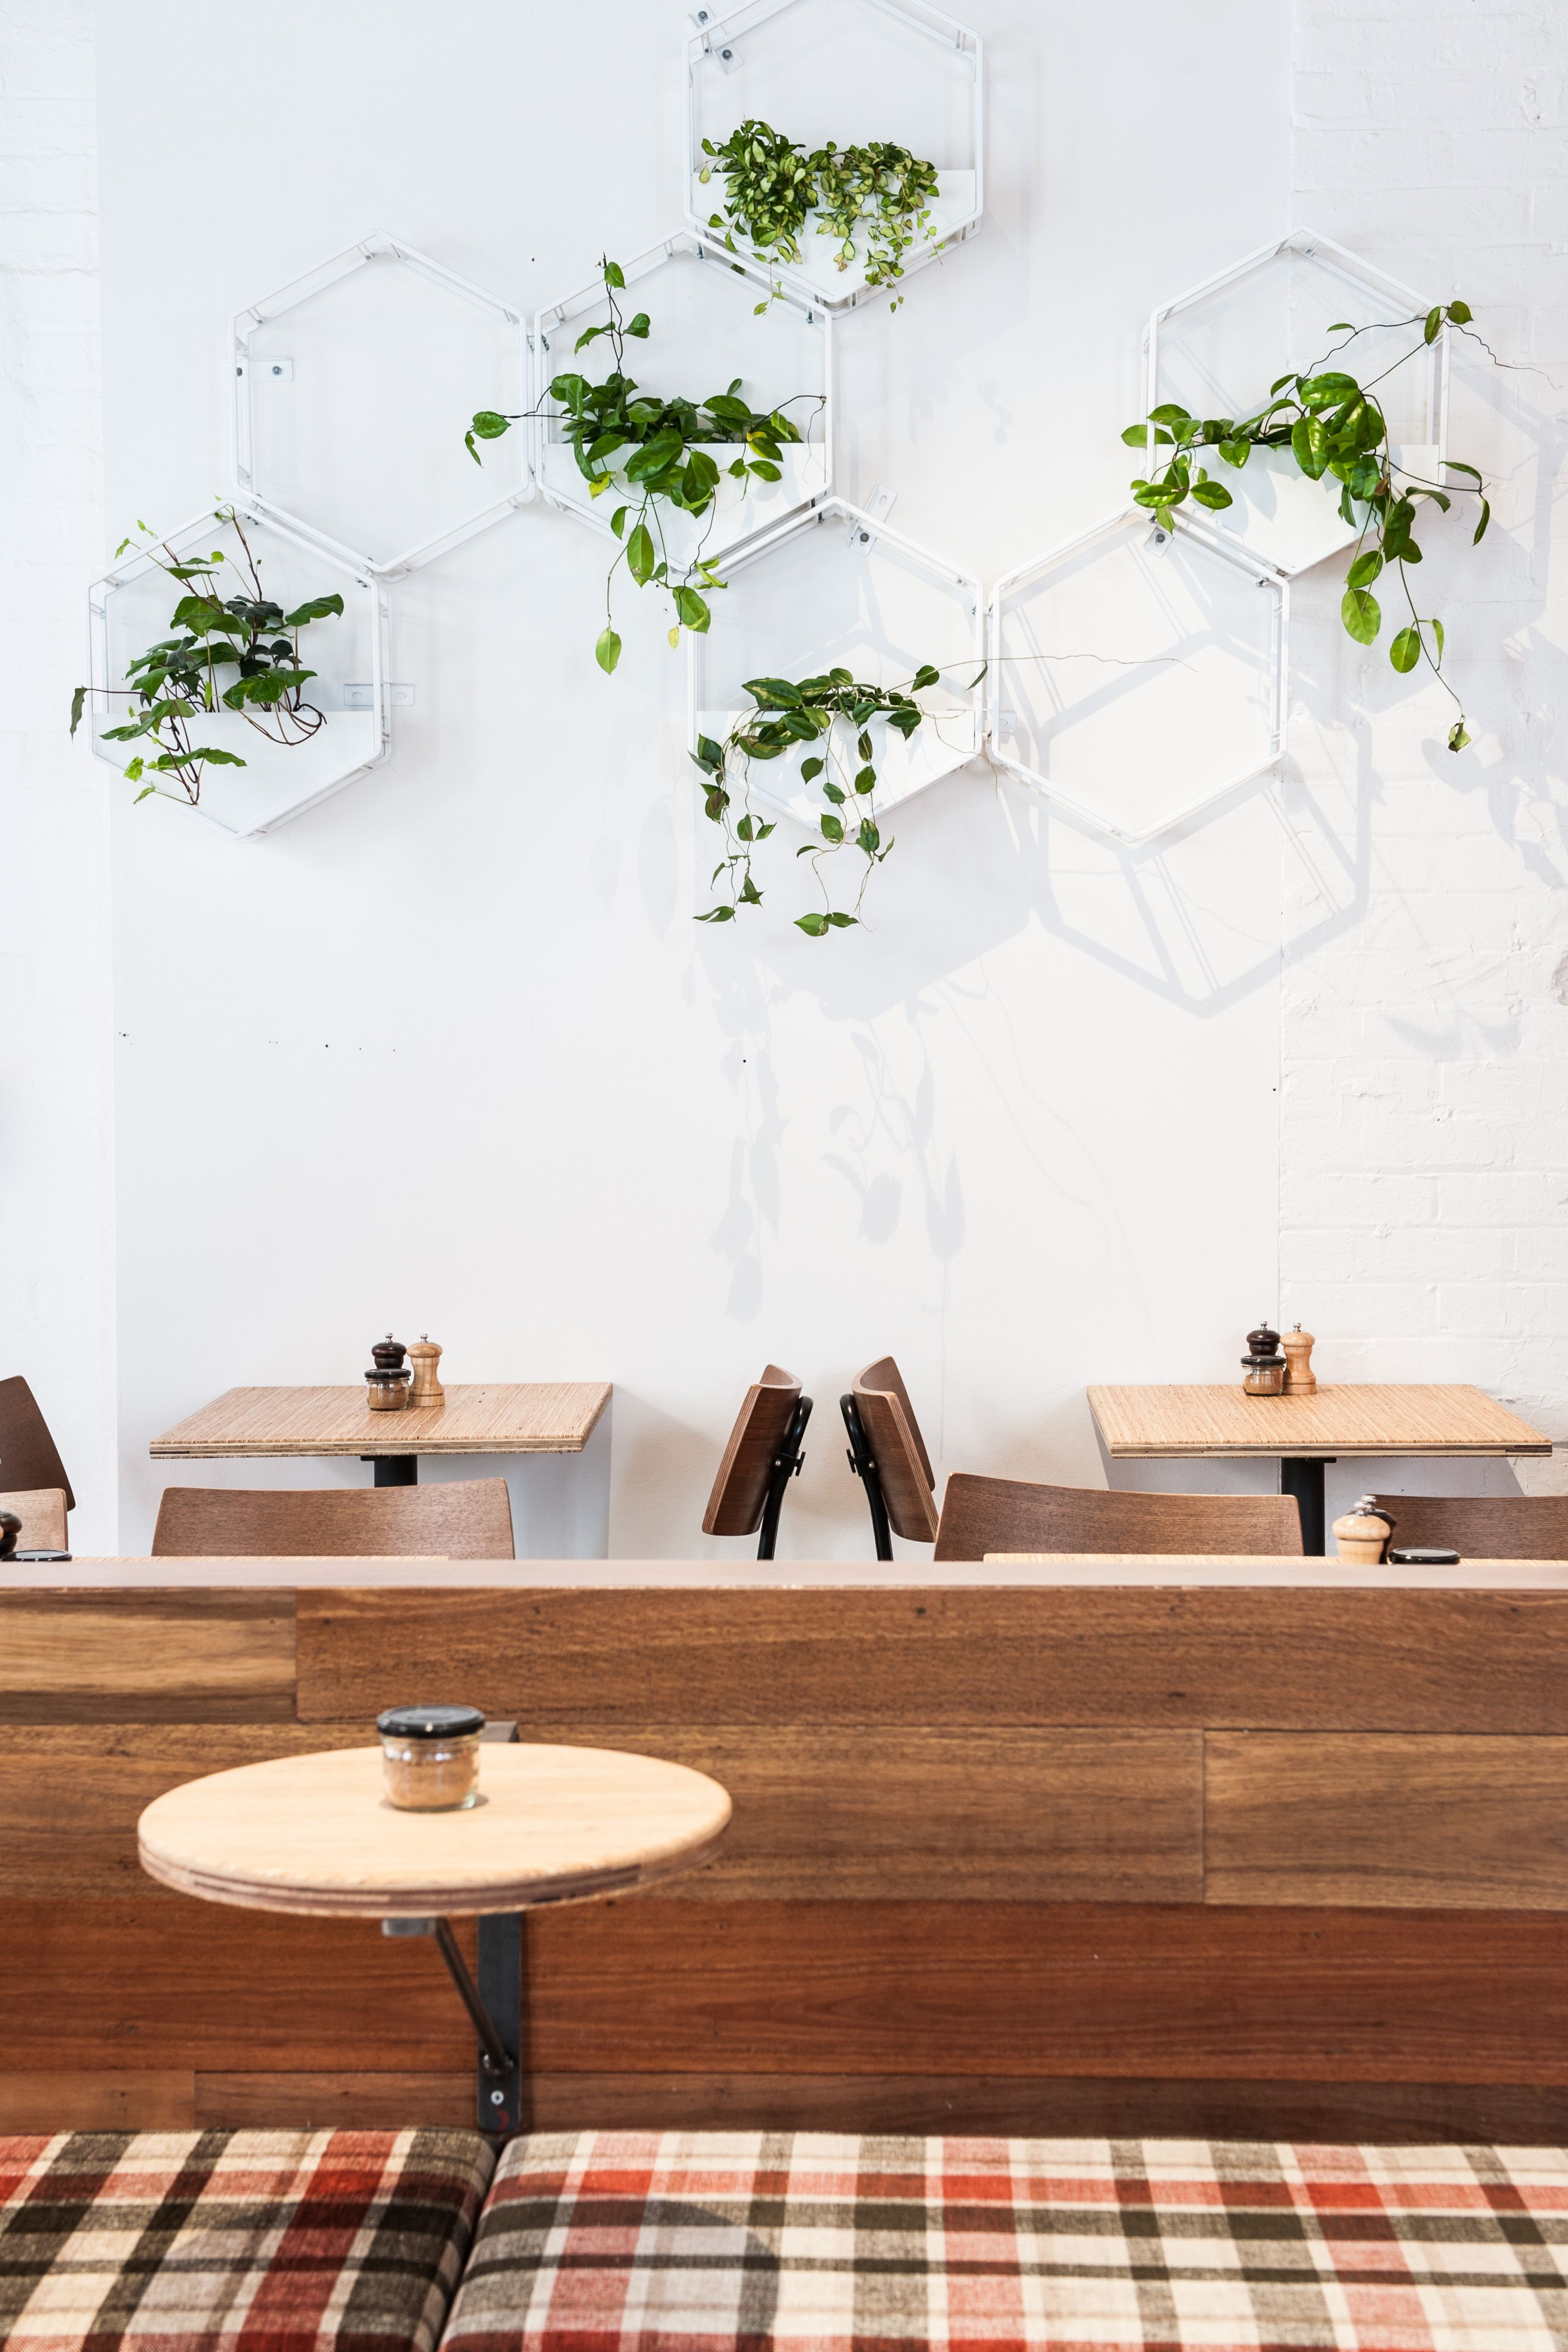 Wabe Modular Wall Planter System By Oblica And Glasshaus Wall Planter Modular Walls Design